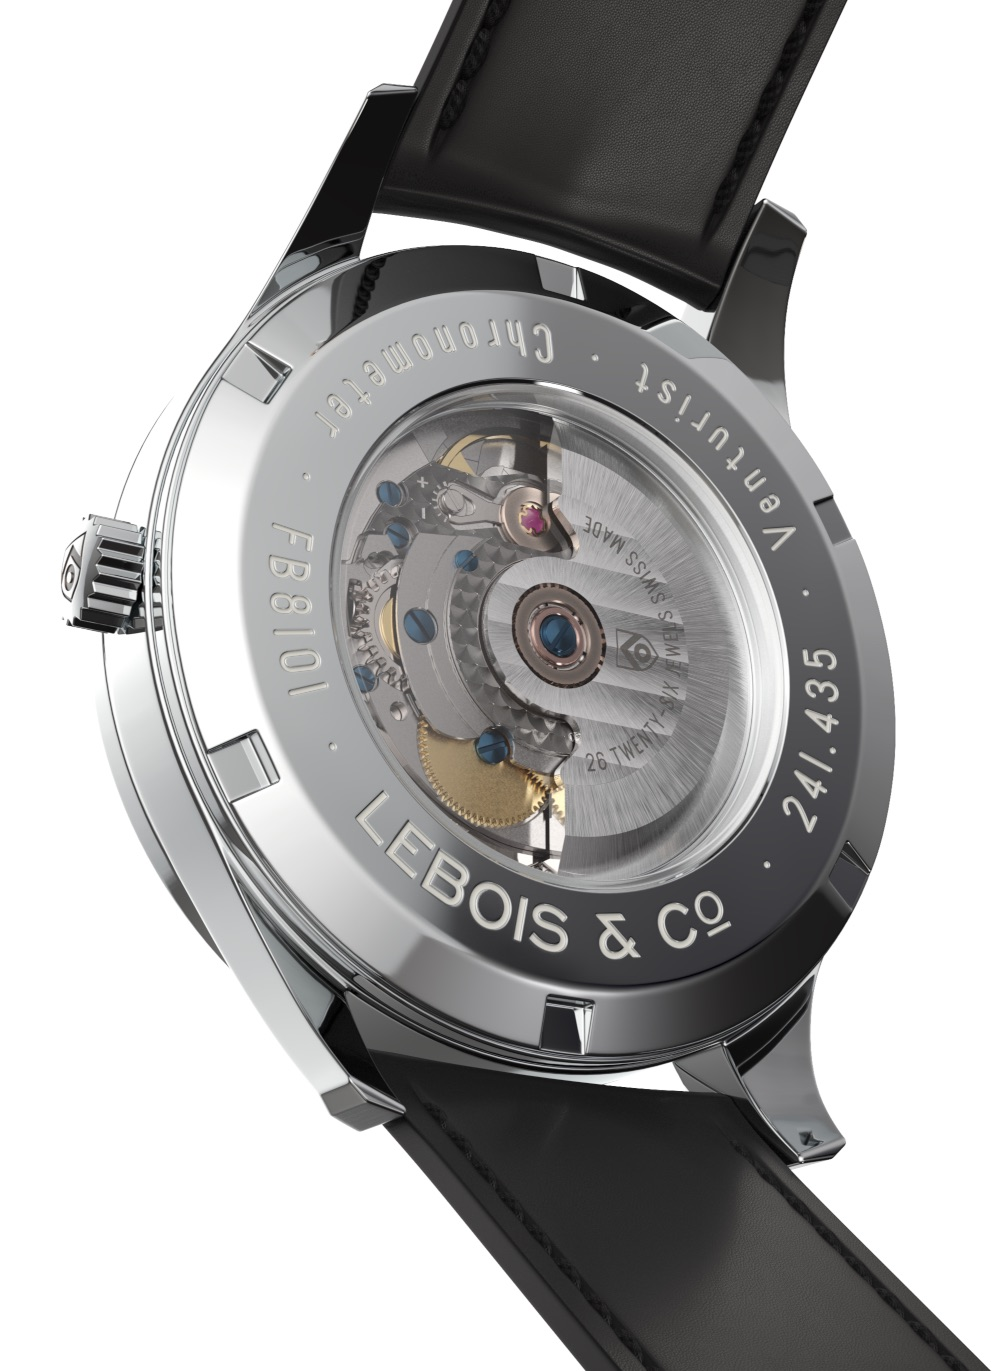 Lebois and Co Venturist Chronometer watch